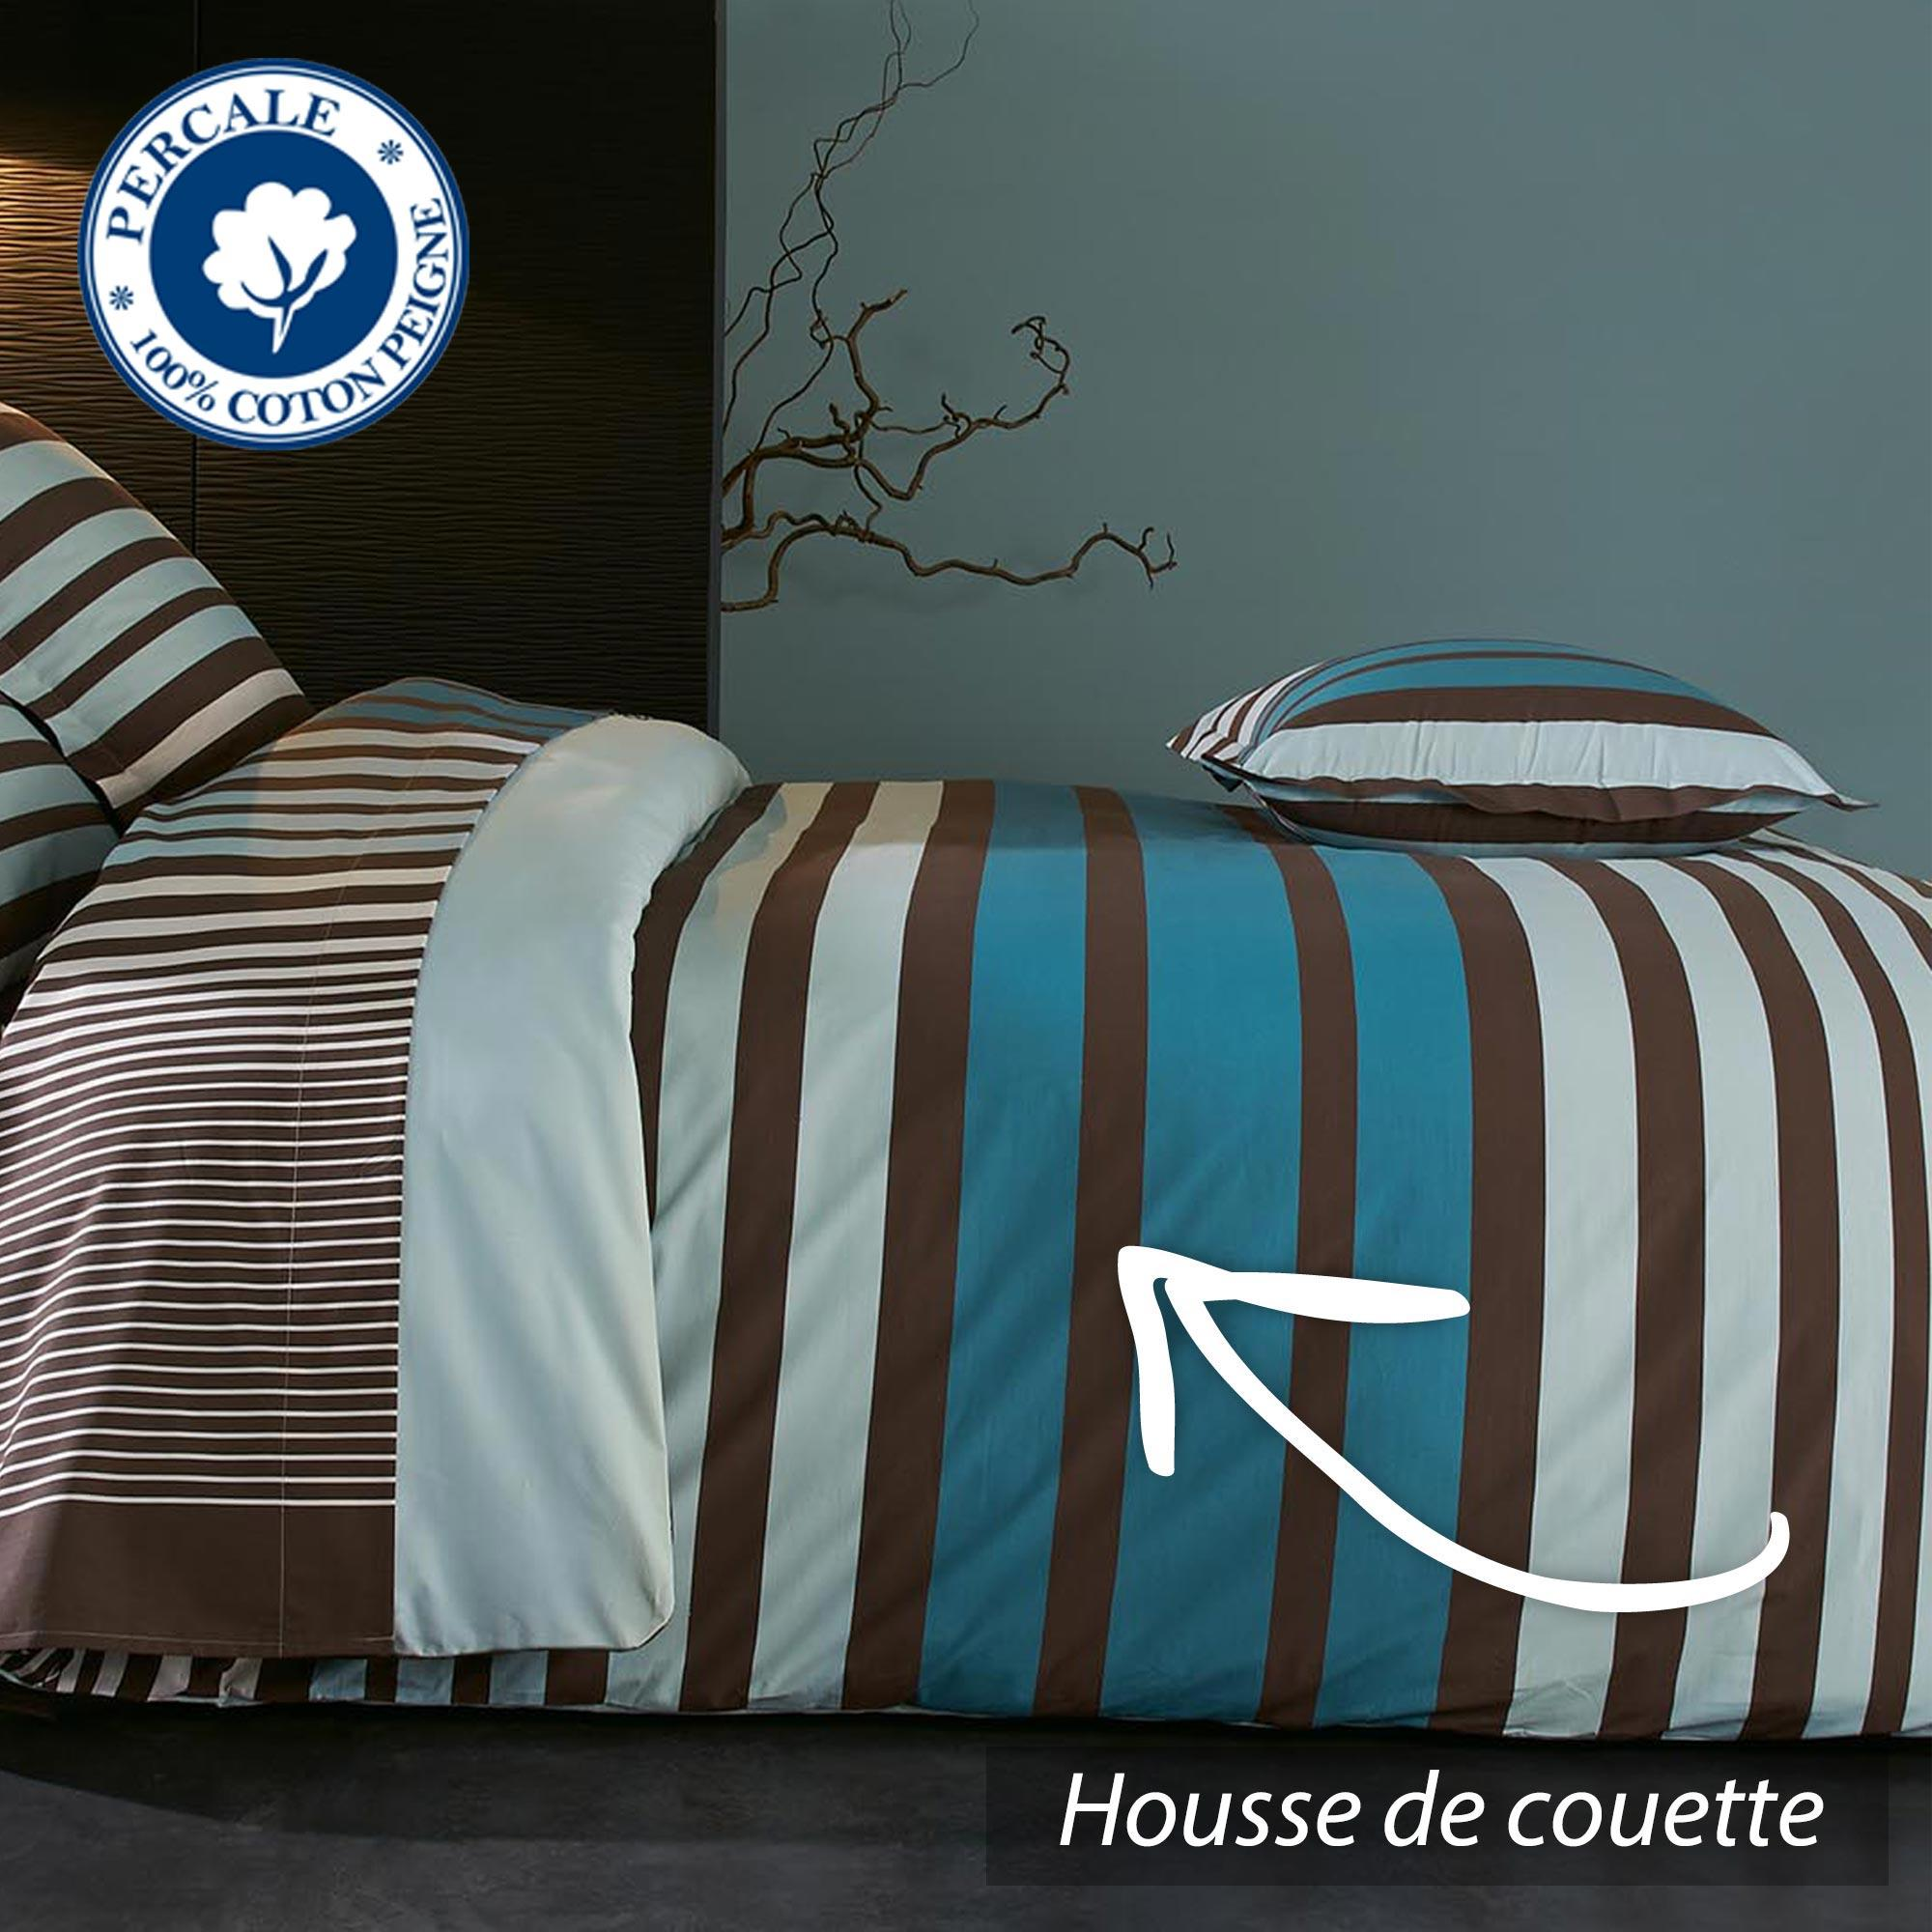 housse de couette percale pur coton peign 260x240 cm. Black Bedroom Furniture Sets. Home Design Ideas